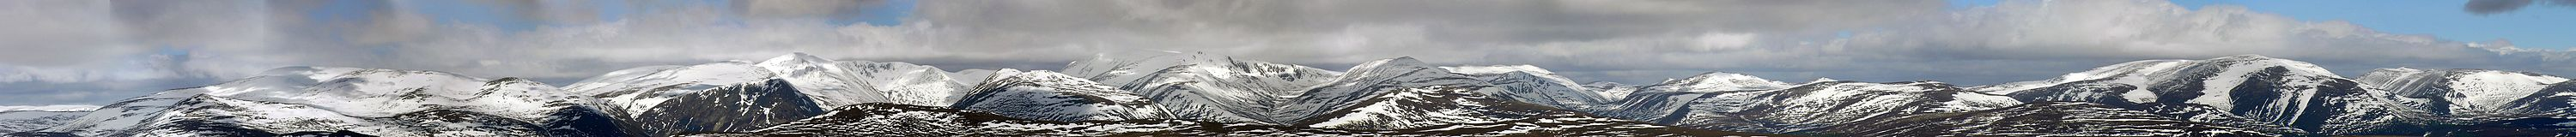 The Cairngorms from Càrn Liath in the Grampians